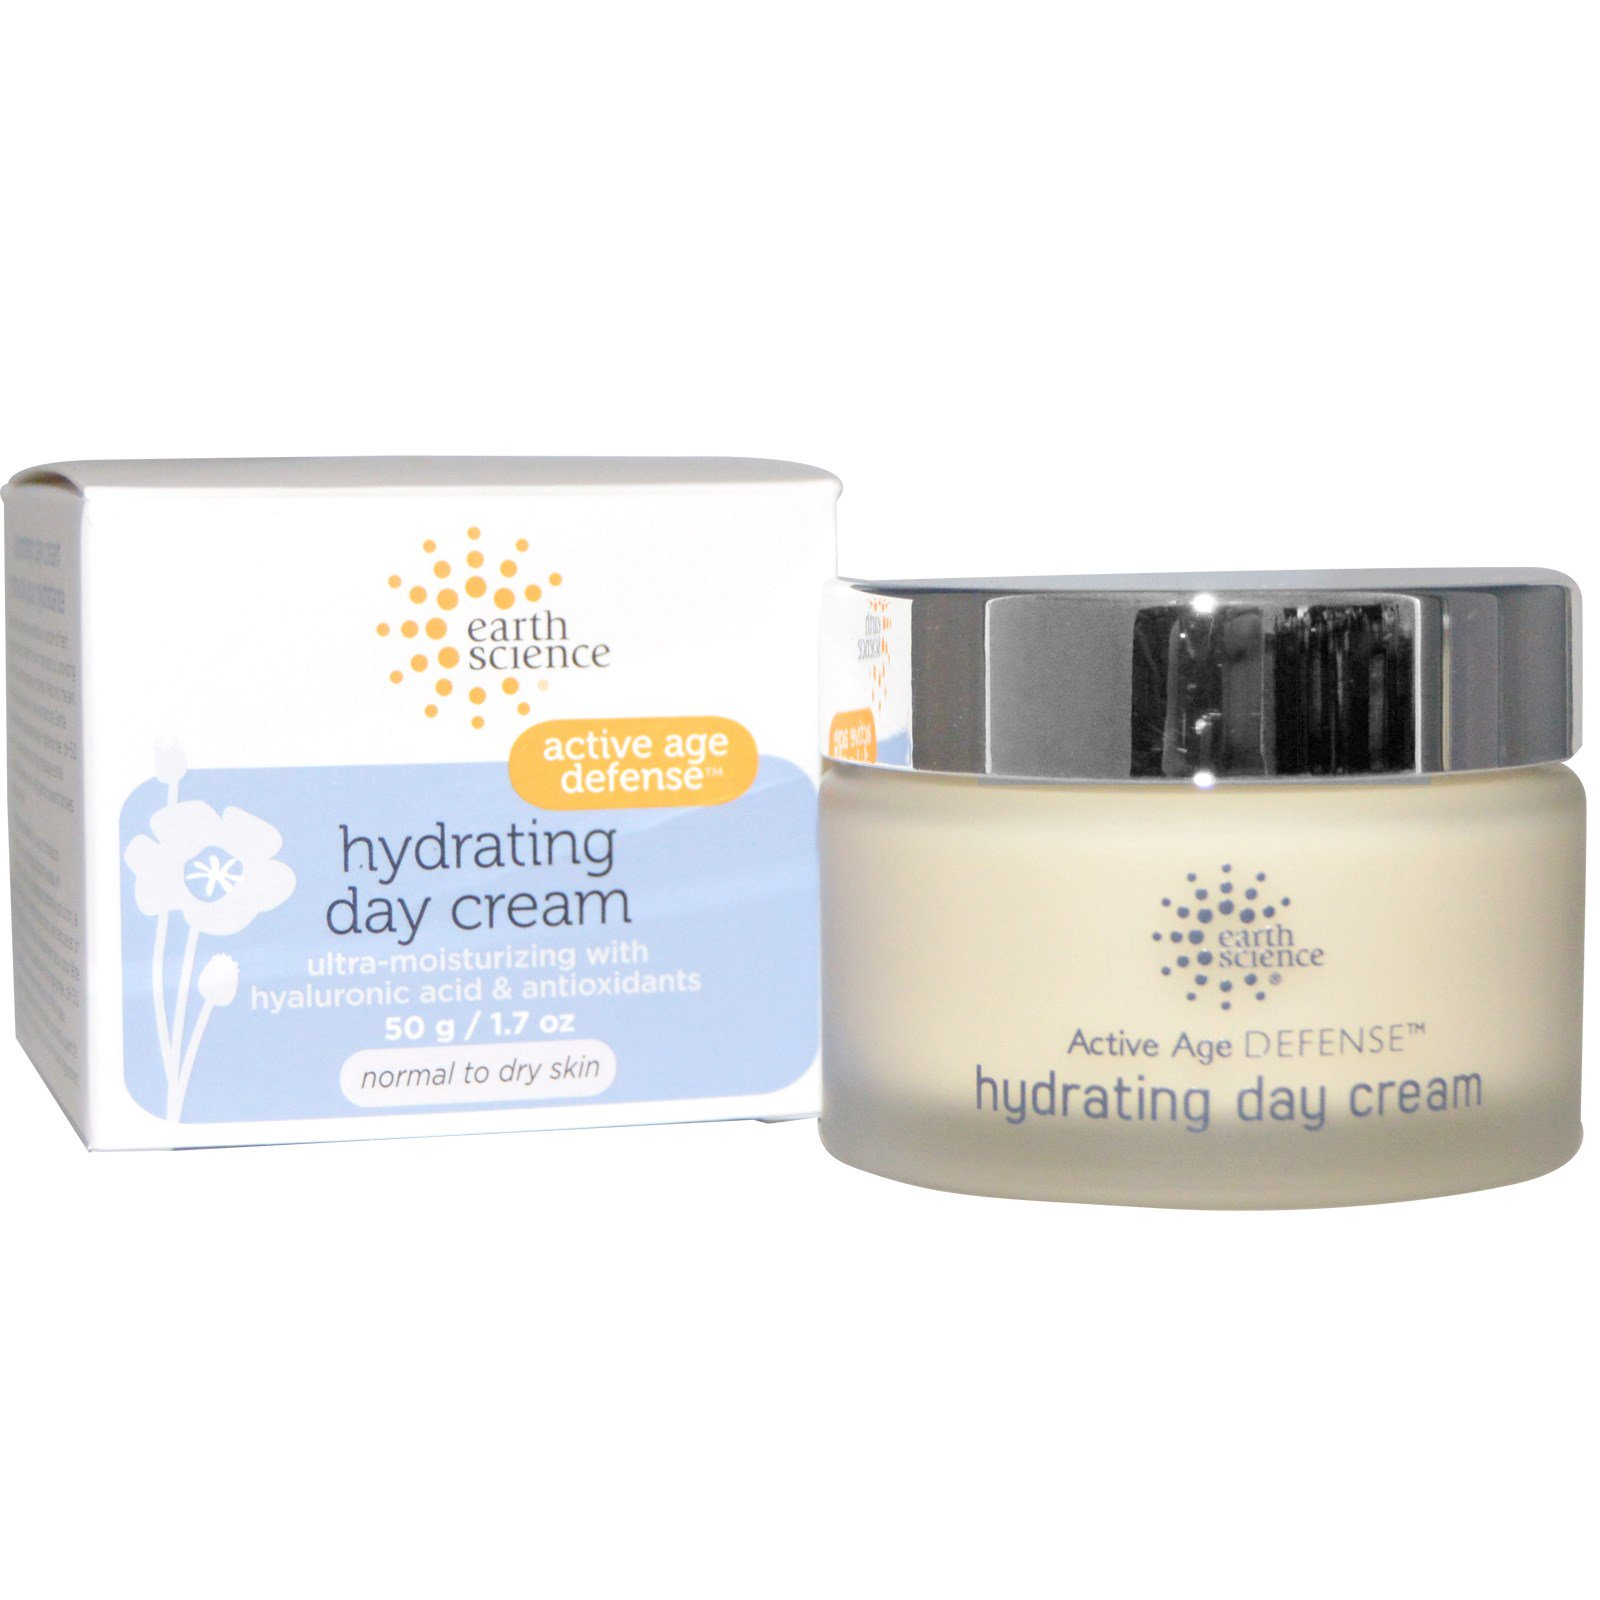 Earth Science, Active Age Defense, Hydrating Day Cream, 1.7 oz(pack of 3) Shiseido - B.H.-24 Day/Night Essence - 2pcs